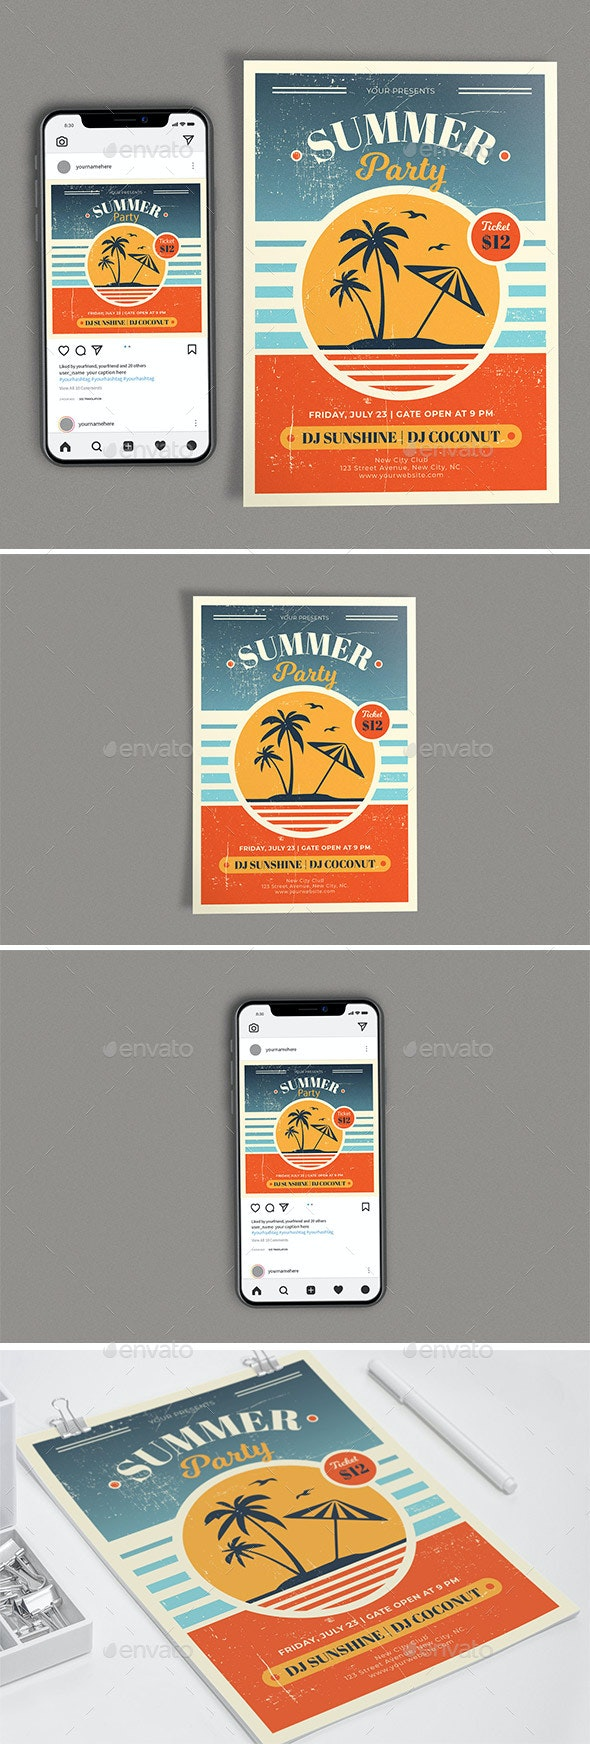 Retro Summer Party Template Set - Clubs & Parties Events